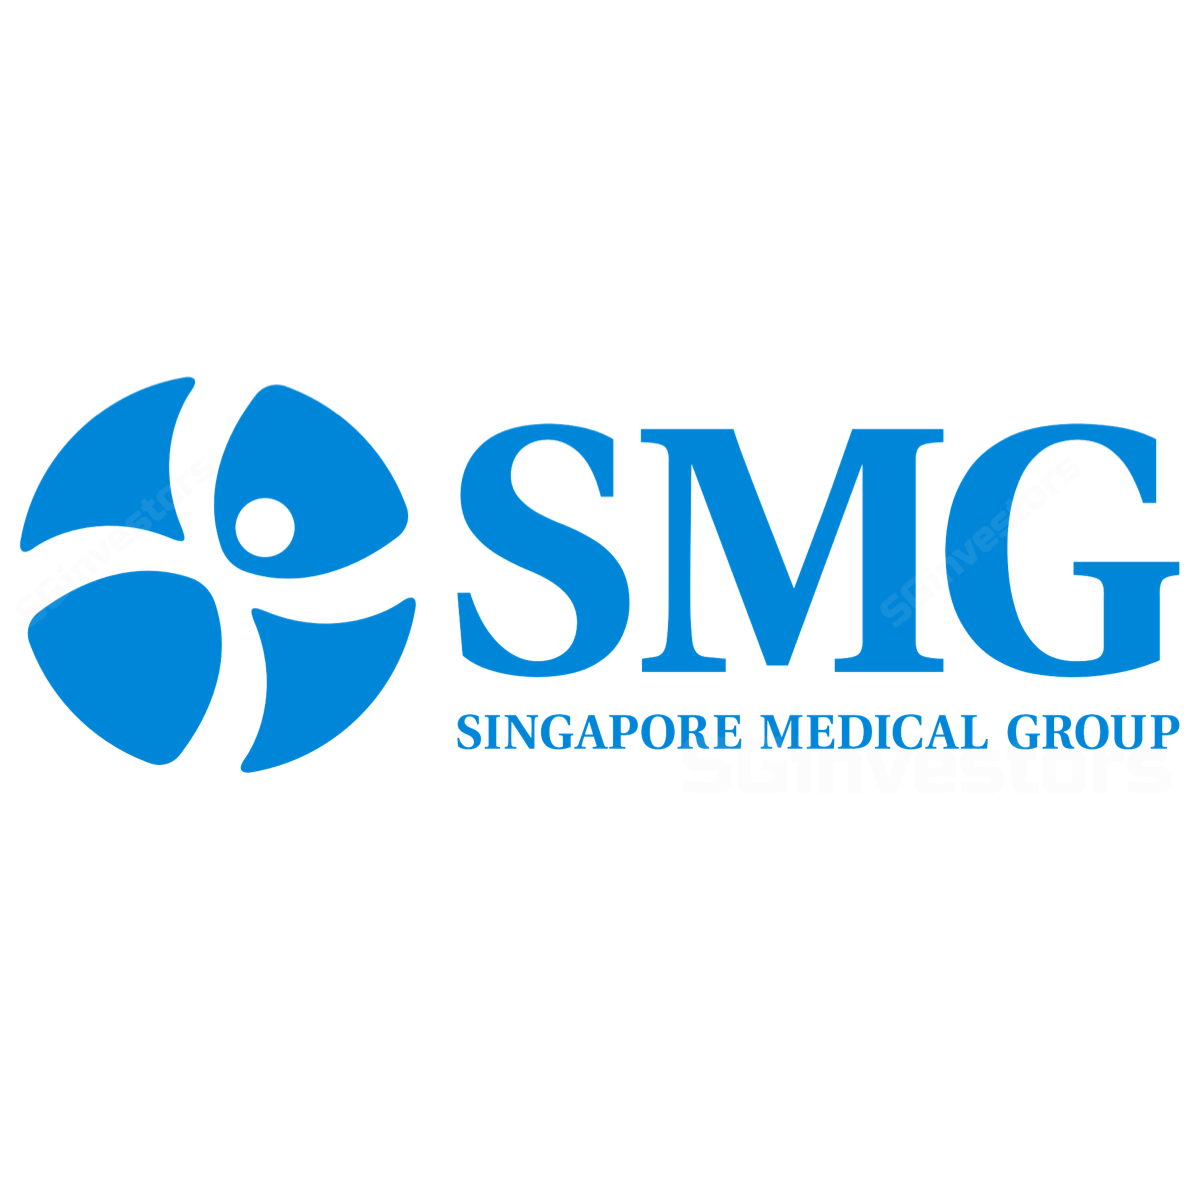 Singapore Medical Group (SMG SP) - Maybank Kim Eng 2017-04-21: Second Major Acquisition, Raise TP by 16%